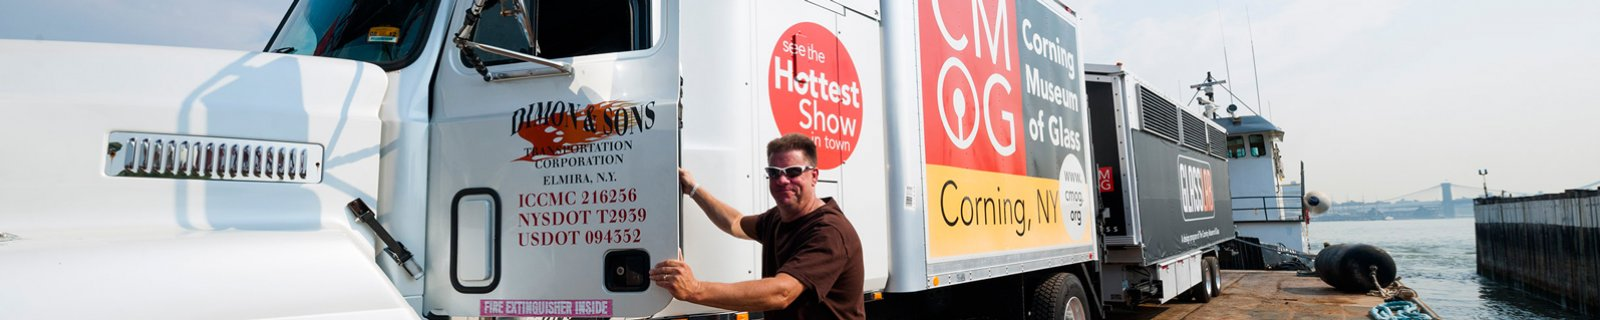 The Hot Glass Roadshow is a mobile, 28-foot-long, 35,000-lb., fully equipped, one-of-a-kind glassmaking studio and stage transported by tractor trailer. Visually spectacular, it provides great impact for visitors at the entrance to a museum or in the midst of a large event.